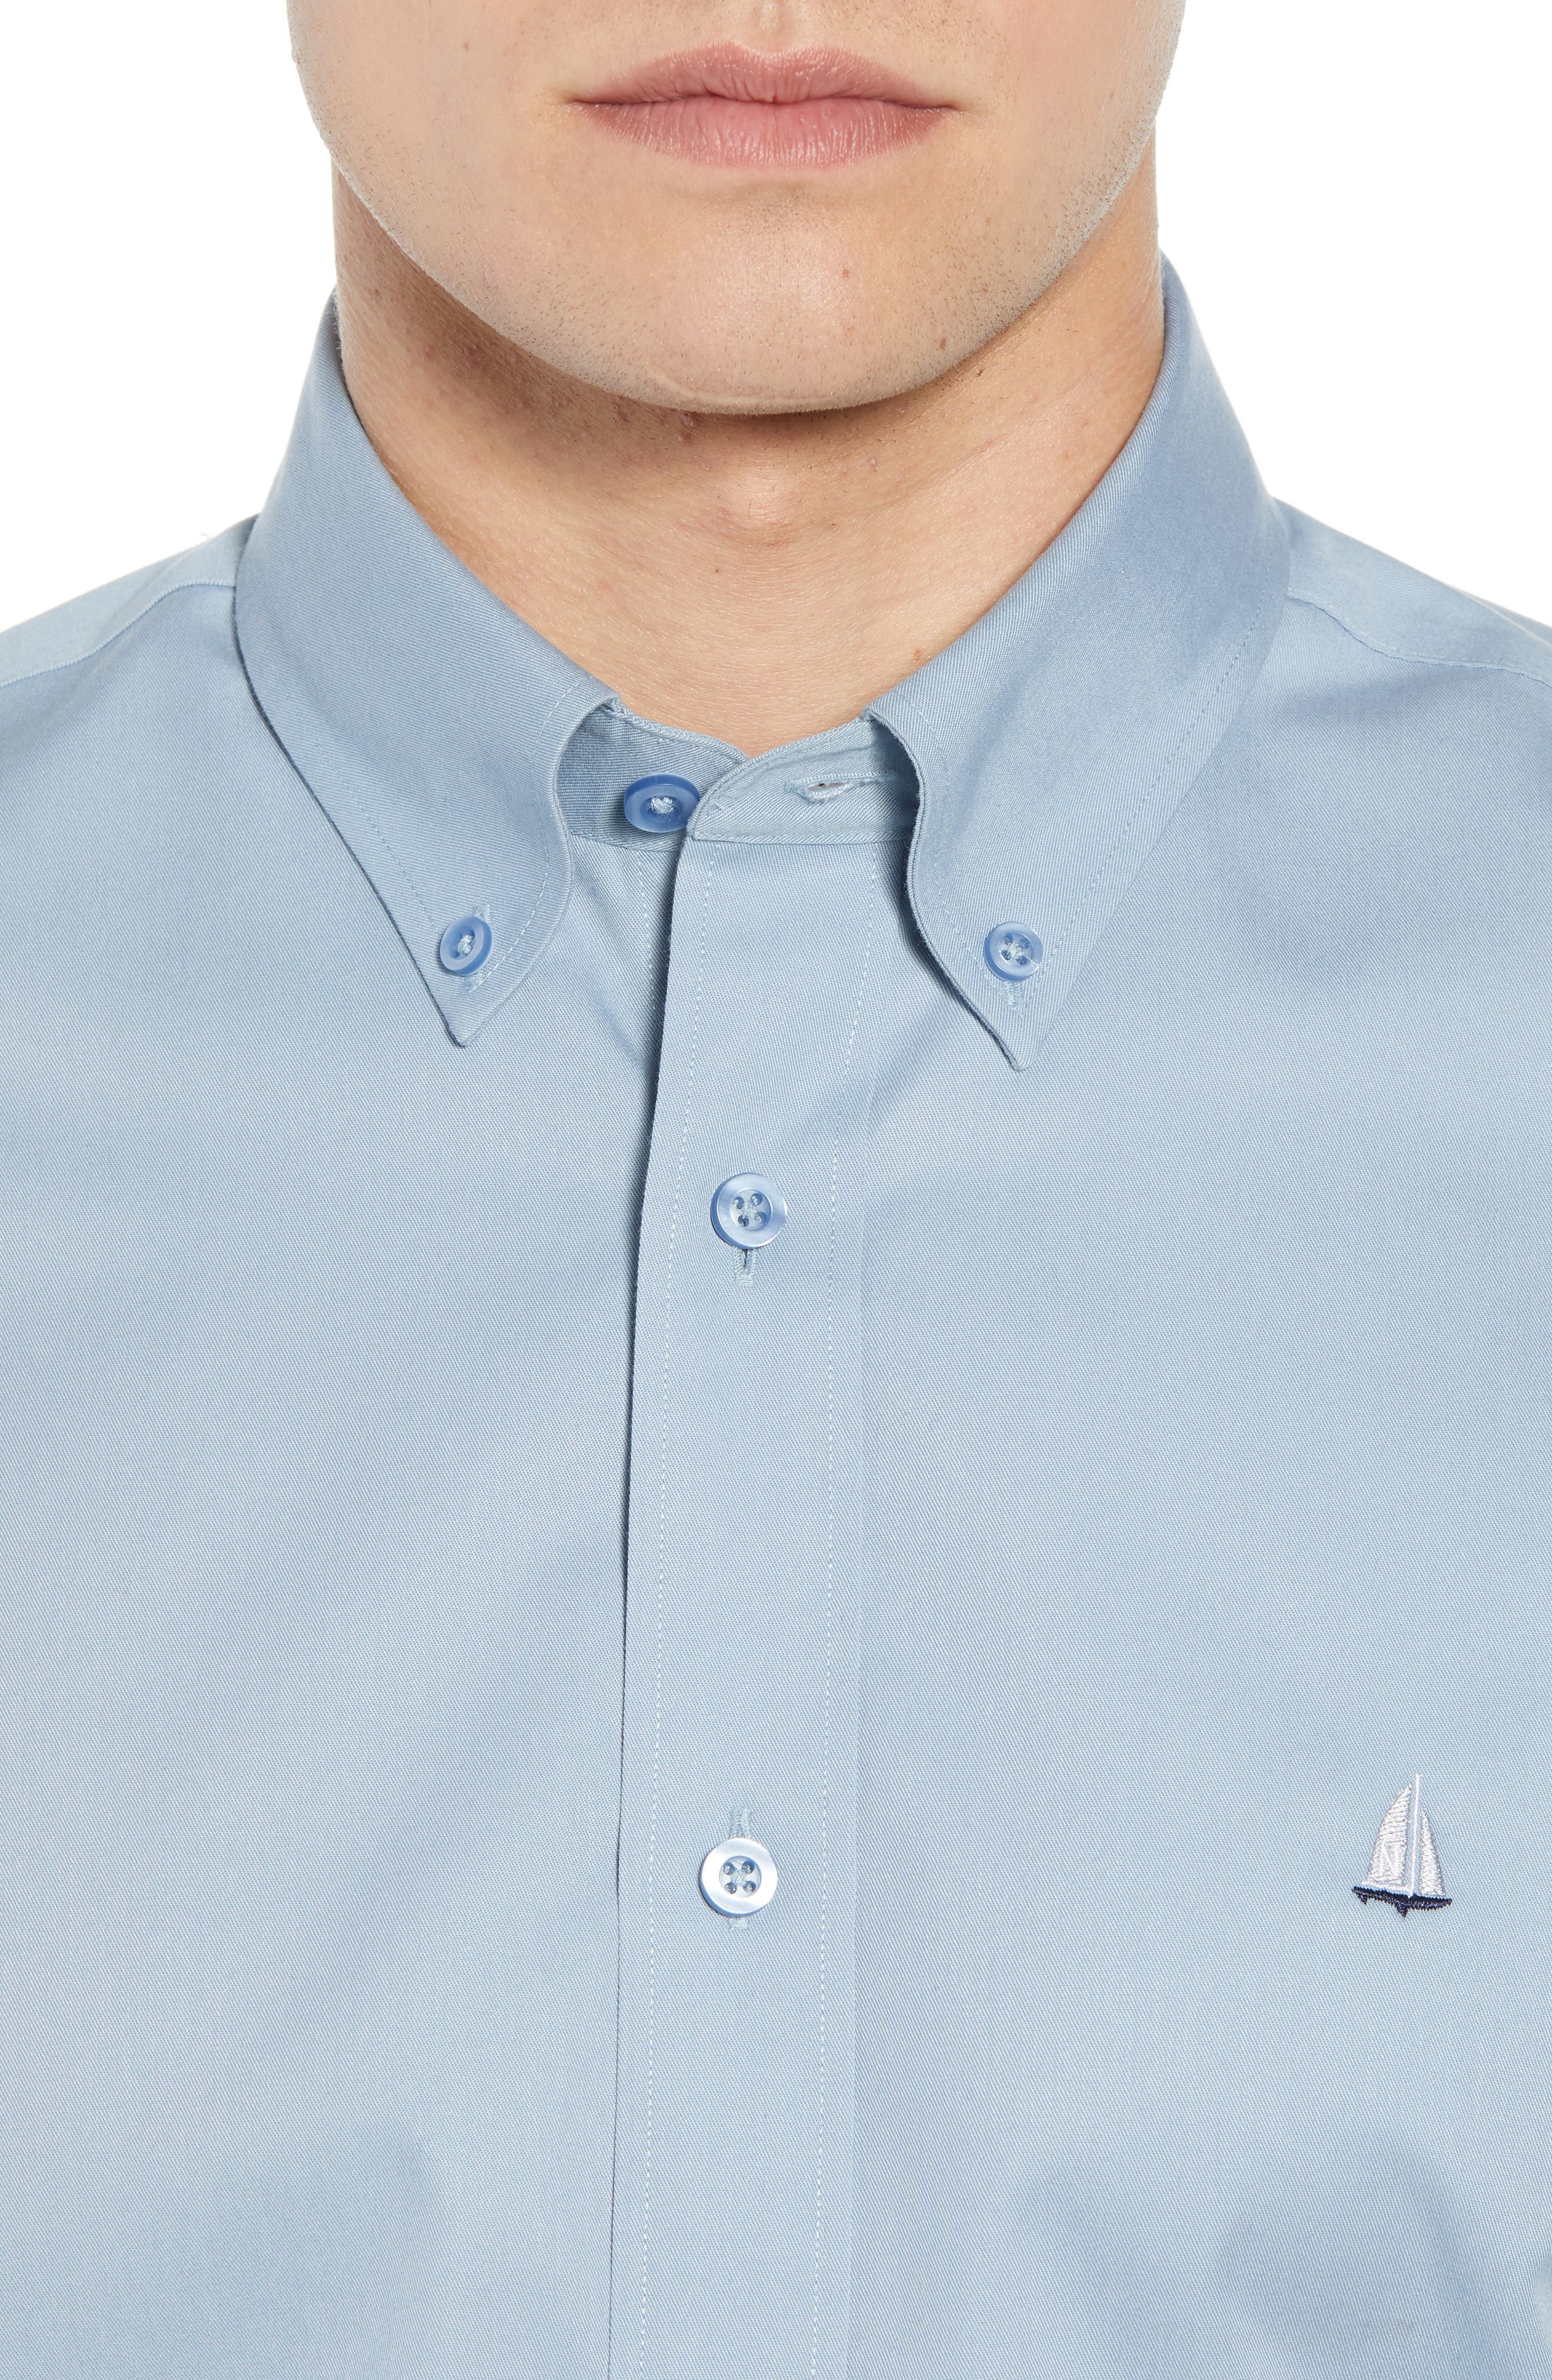 NORDSTROM MEN'S SHOP,                             Smartcare<sup>™</sup> Traditional Fit Twill Boat Shirt,                             Alternate thumbnail 4, color,                             BLUE DRIZZLE